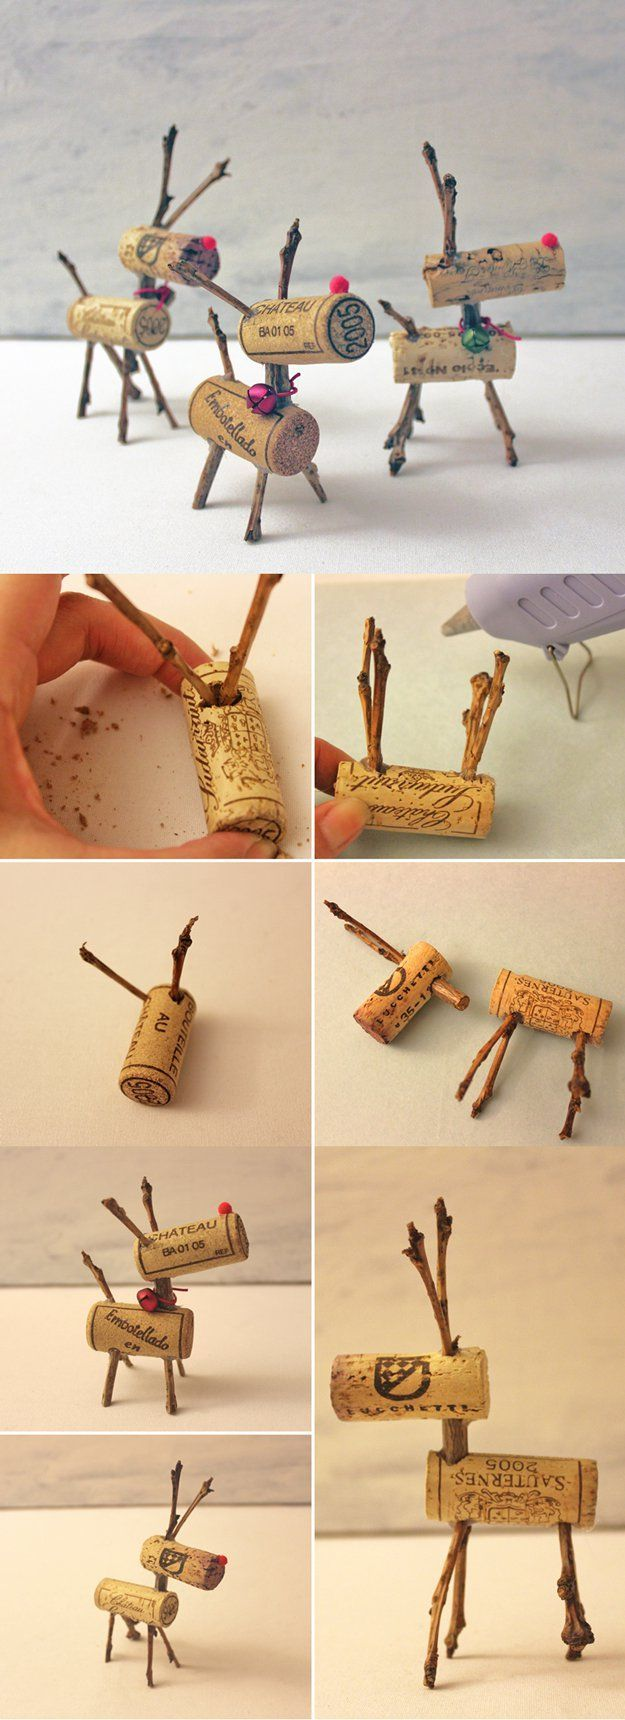 43 More DIY Wine Cork Crafts Ideas DIYReady